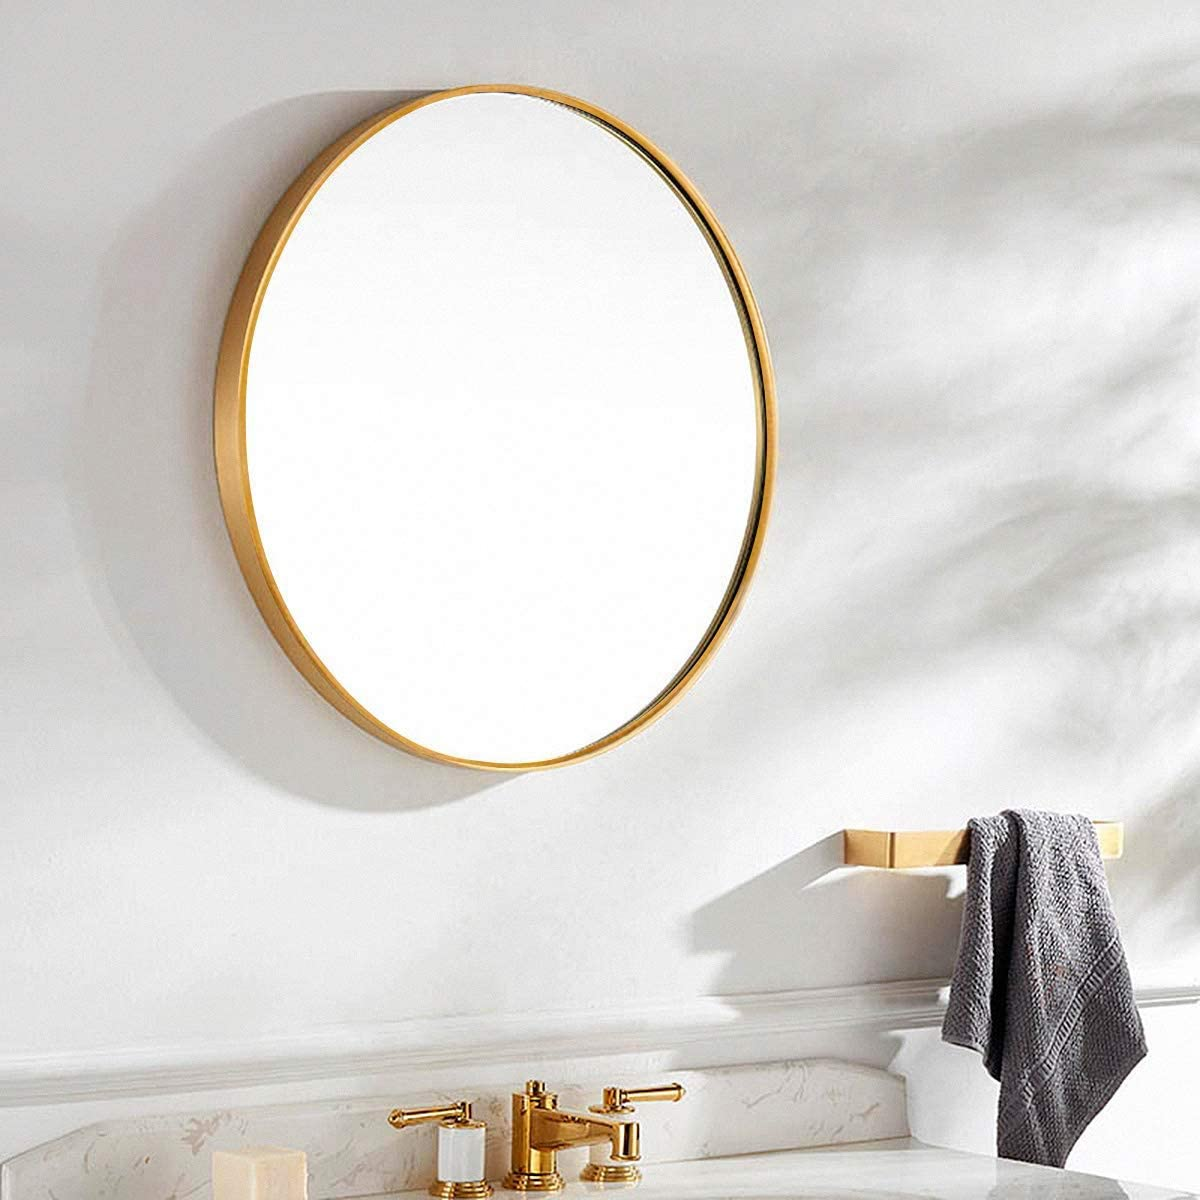 Amazon Com Tinytimes 23 63 Modern Large Round Mirror Accent Mirror Round Wall Mirror Brushed Framed Round Metal Mirror Home Decor For Bathroom Living Rooms Entryways Gold Furniture Decor